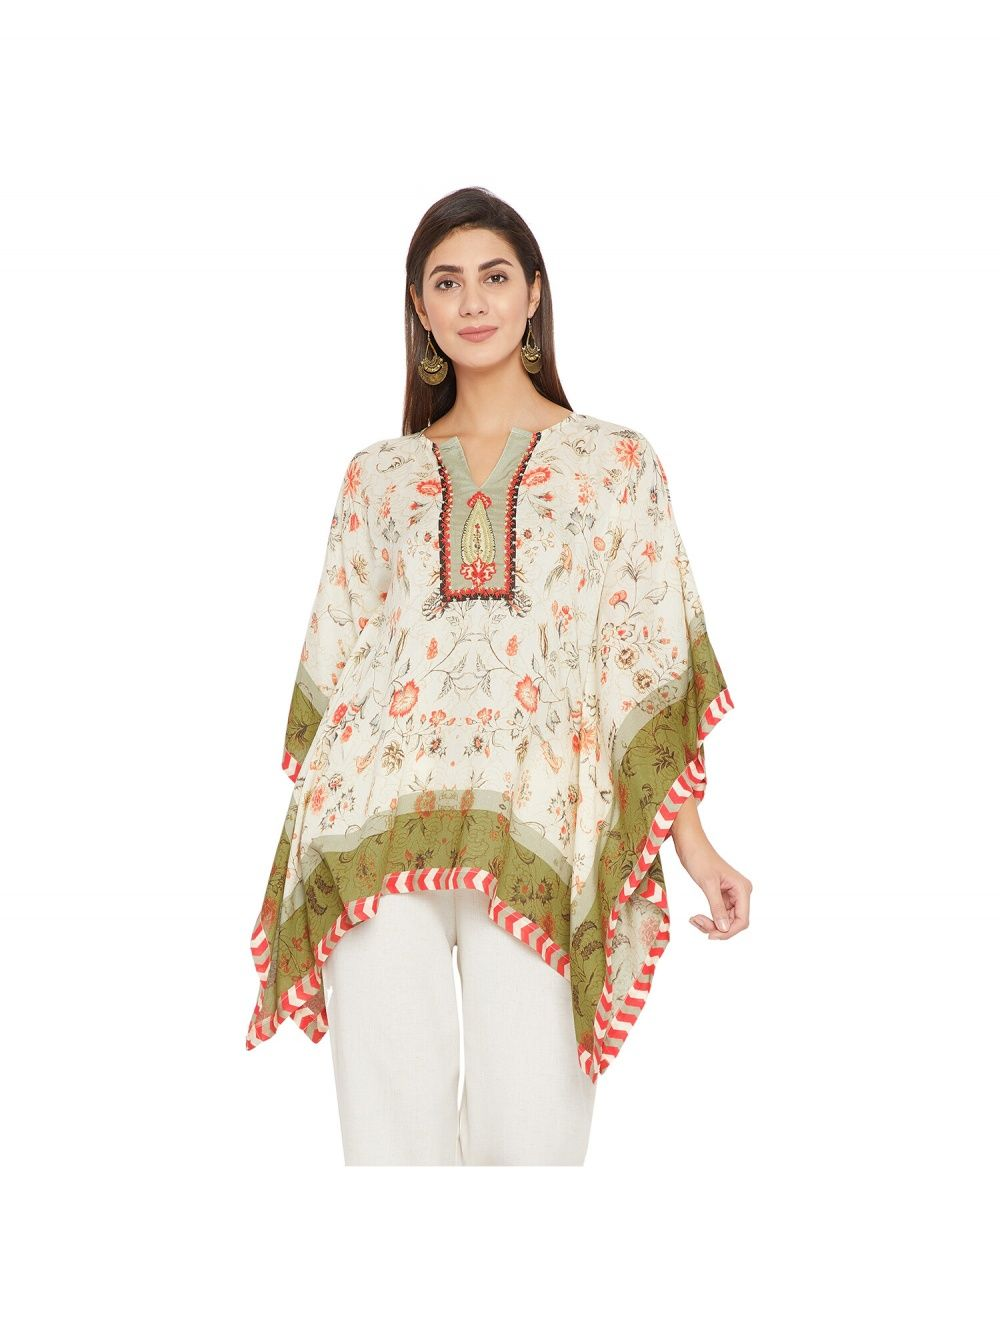 bfd4eabbbad457 THE KAFTAN COMPANY Safavid Palampore Embroidery Kaftan And Pant Set